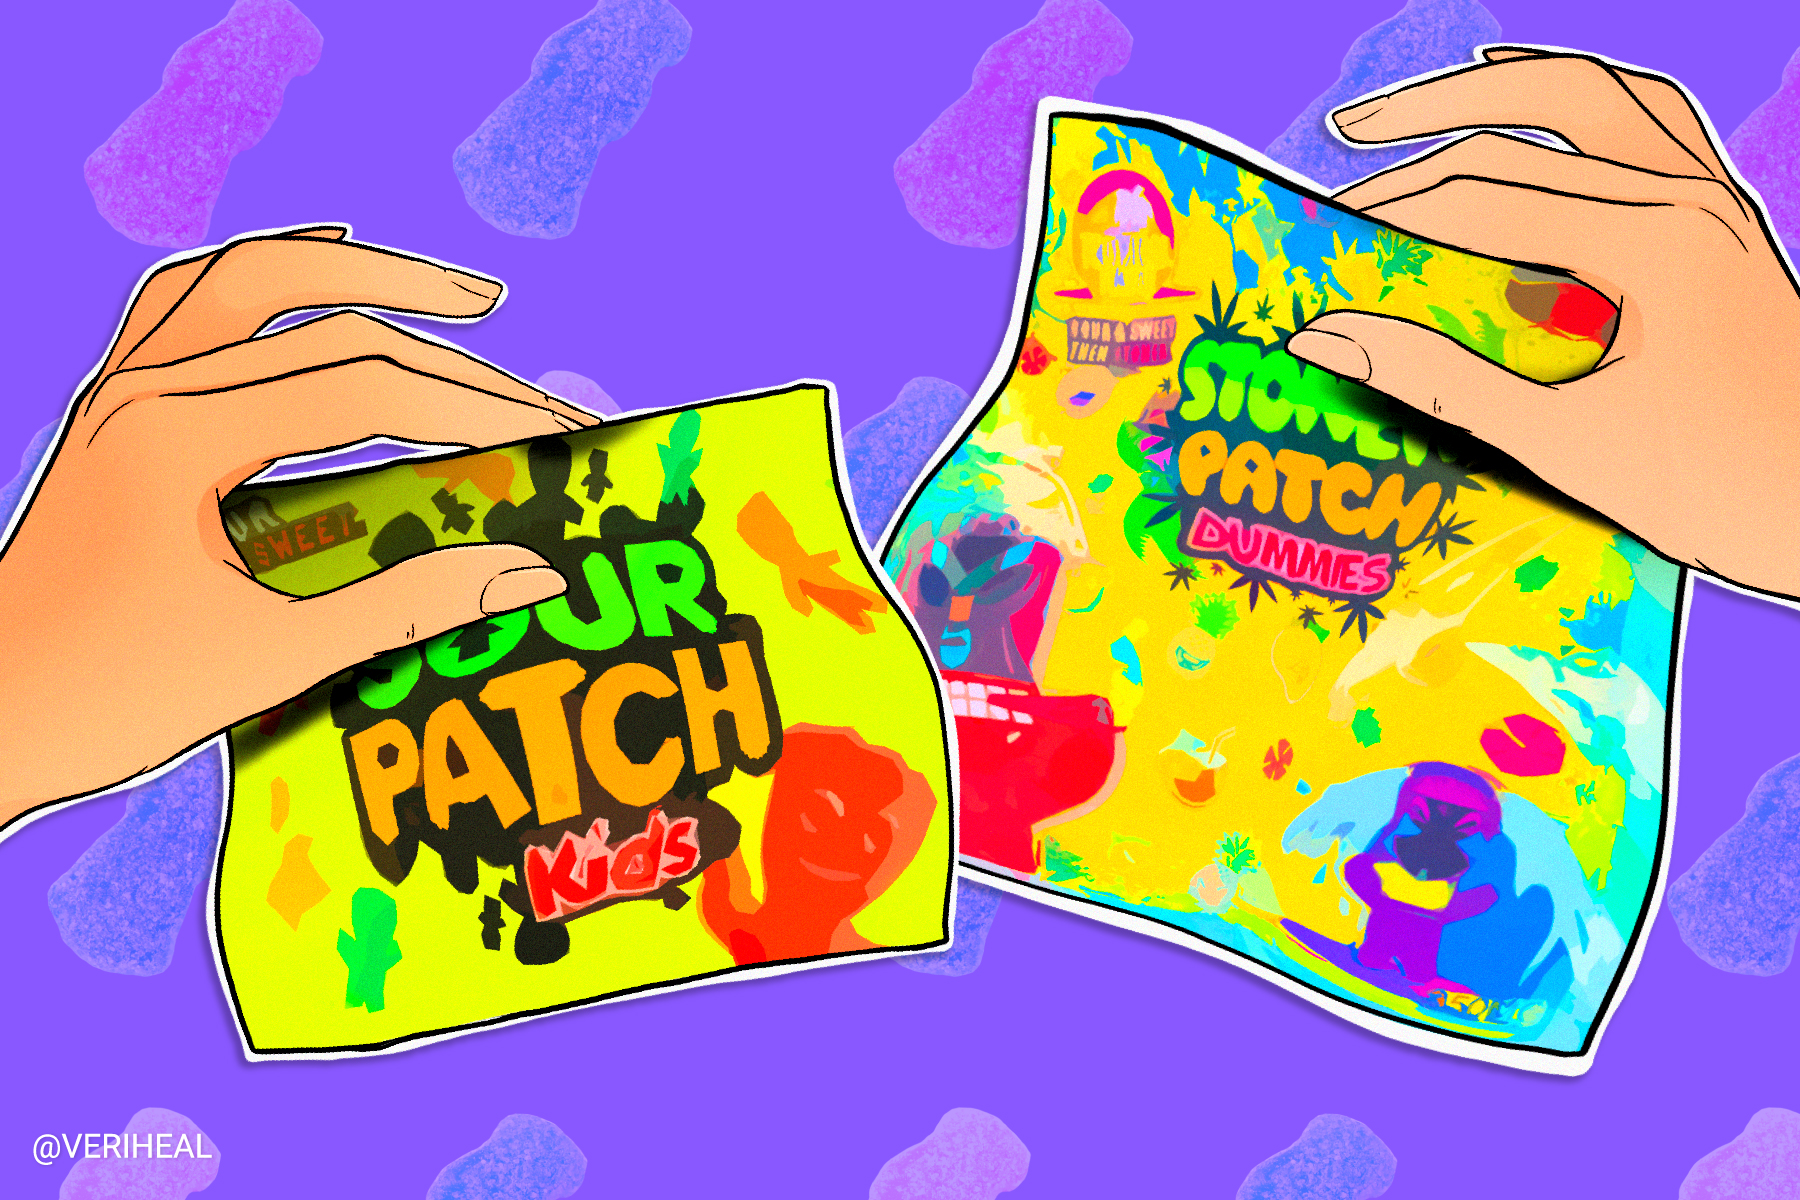 Copycat Cannabis Packaging Has Major Candy Brands Seeing Red